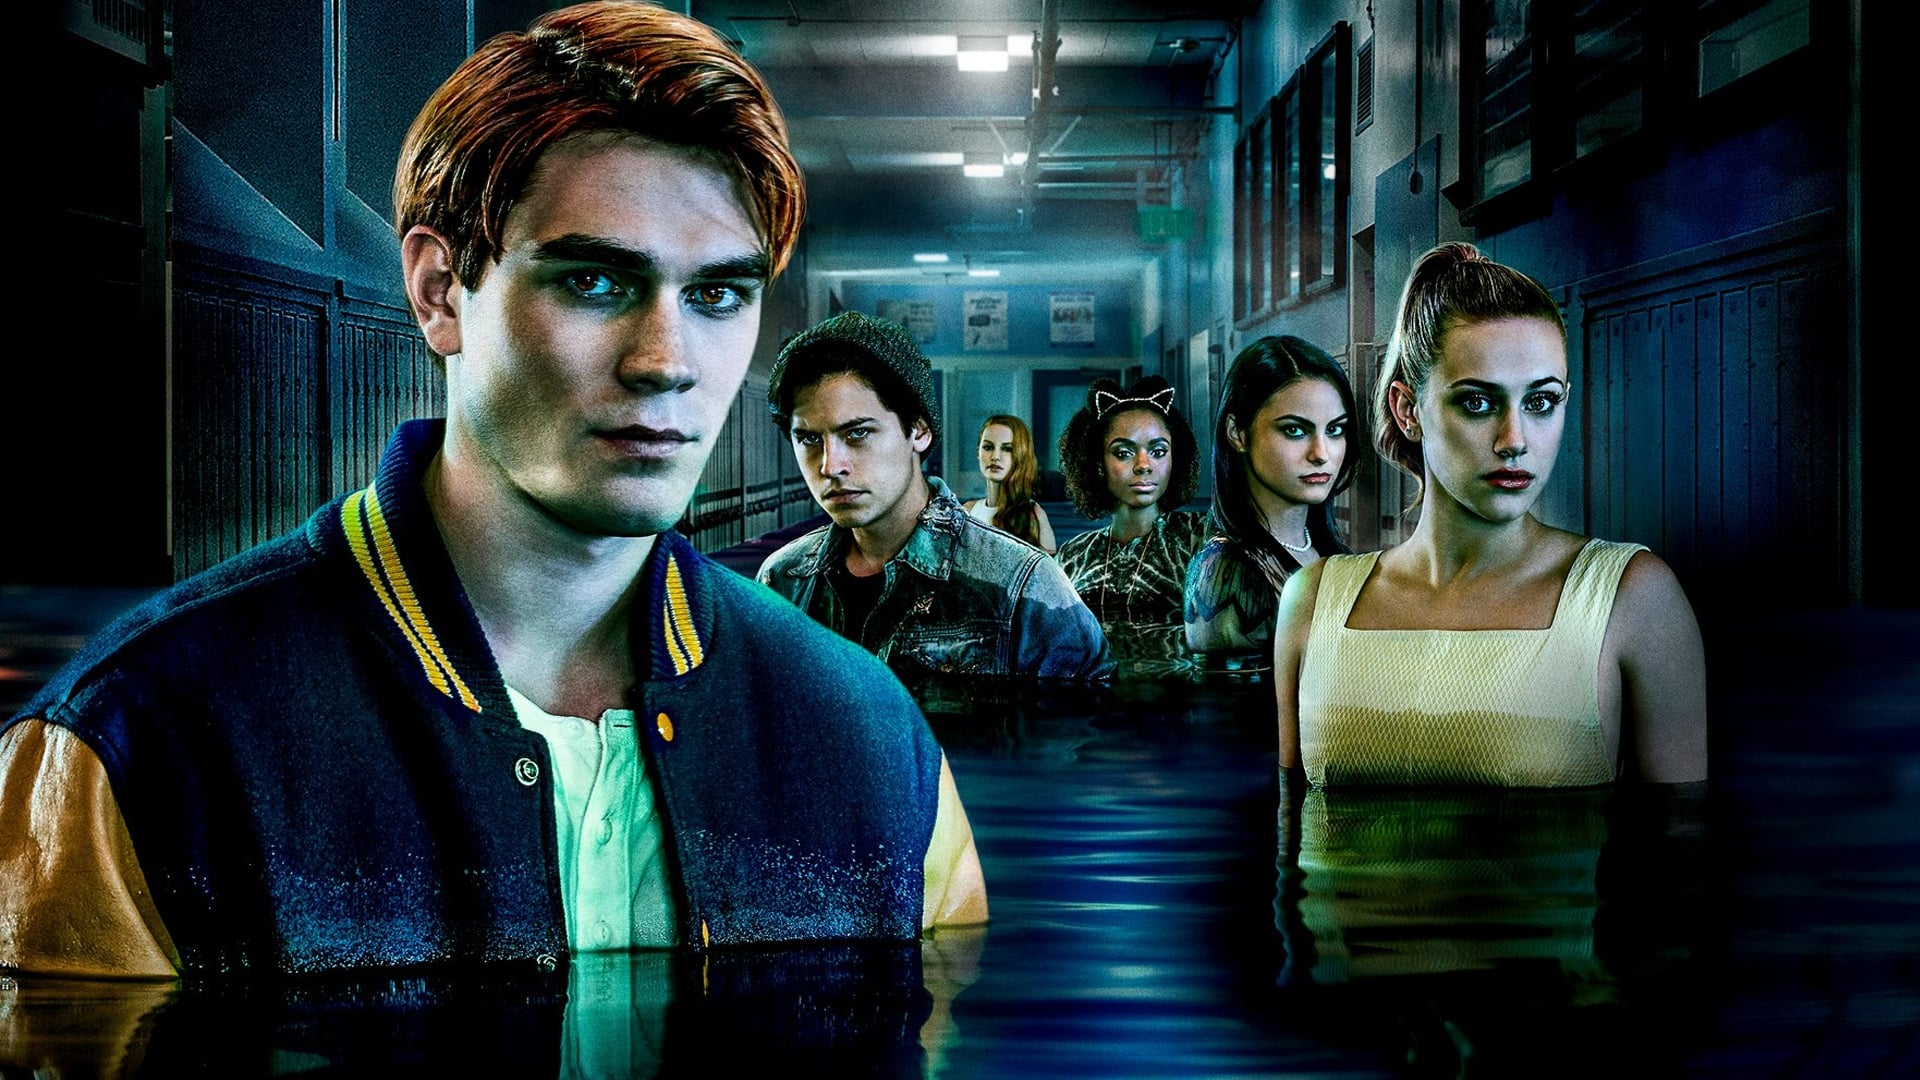 Riverdale Season 4 Episode 13 : Chapter Seventy: The Ides of March